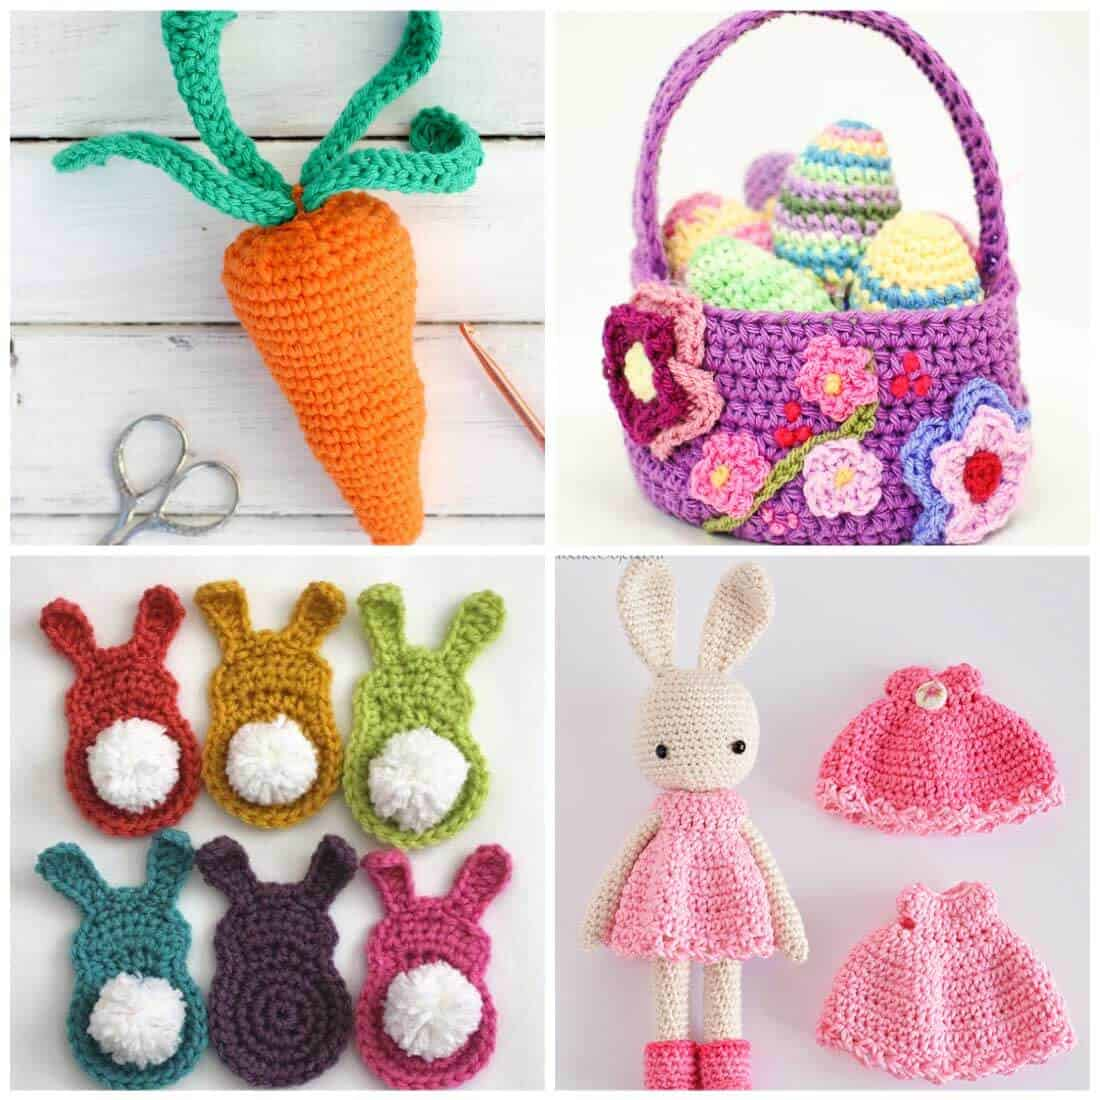 Free Crochet Patterns | Crochet Patterns for Easter | Crochet Patterns for Spring | Flower Crochet Patterns | Fun Crochet Patterns | Use these adorable free crochet patterns to make something that will get you in the mood for Spring. These fun patterns are perfect for Easter baskets and more!